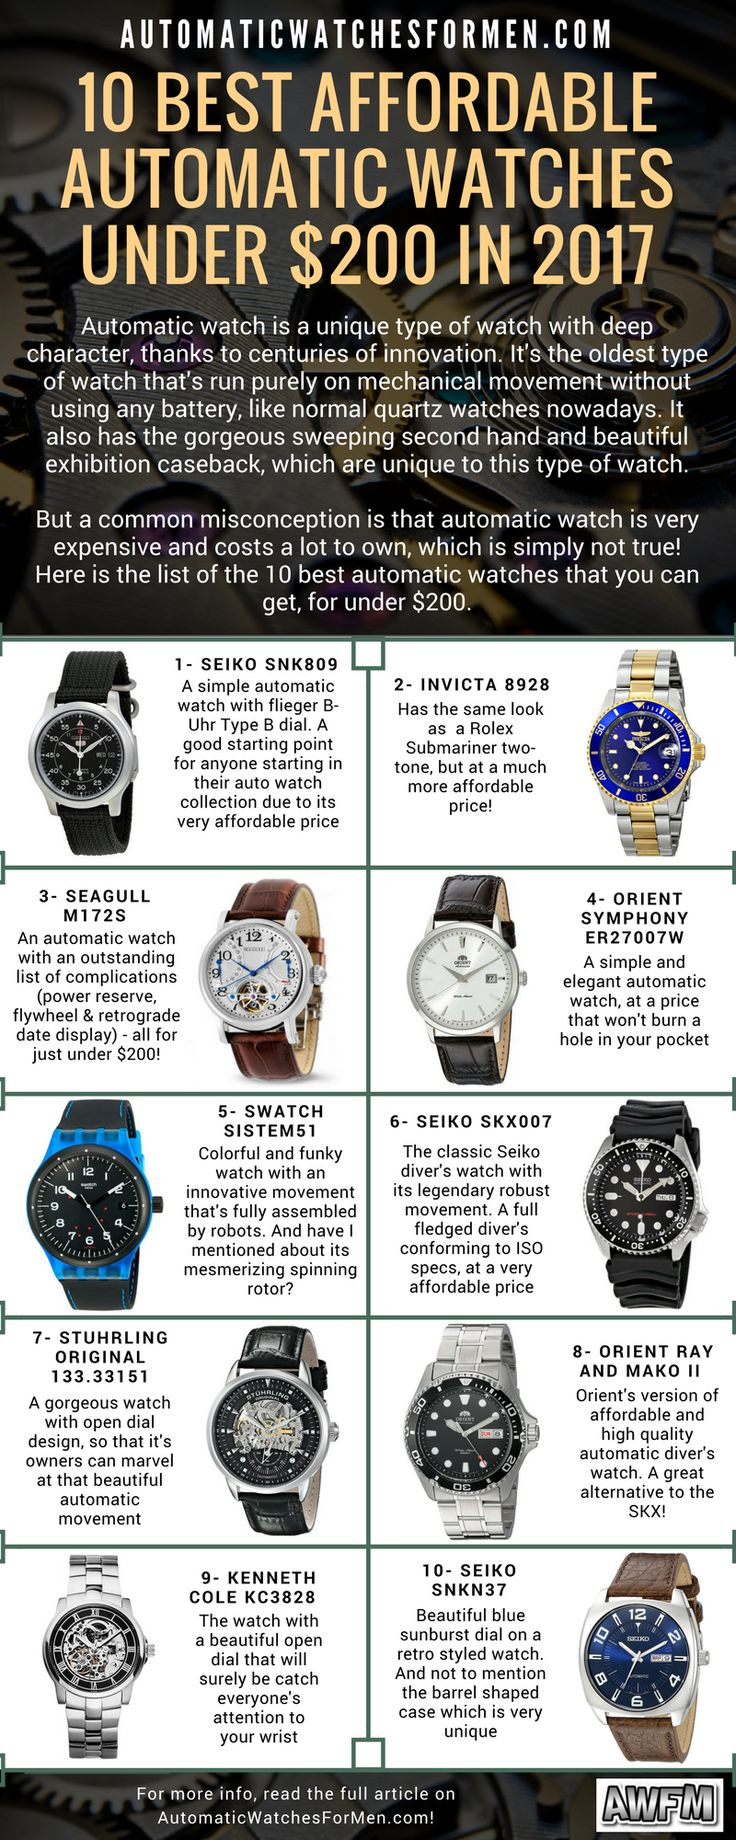 Find out the 10 best affordable automatic watches under $200, in 2017 here.  >>>> https://automaticwatchesformen.com/10-best-affordable-automatic-watches-under-200-in-2017  Let me know what you guys think about this list. Cheers!